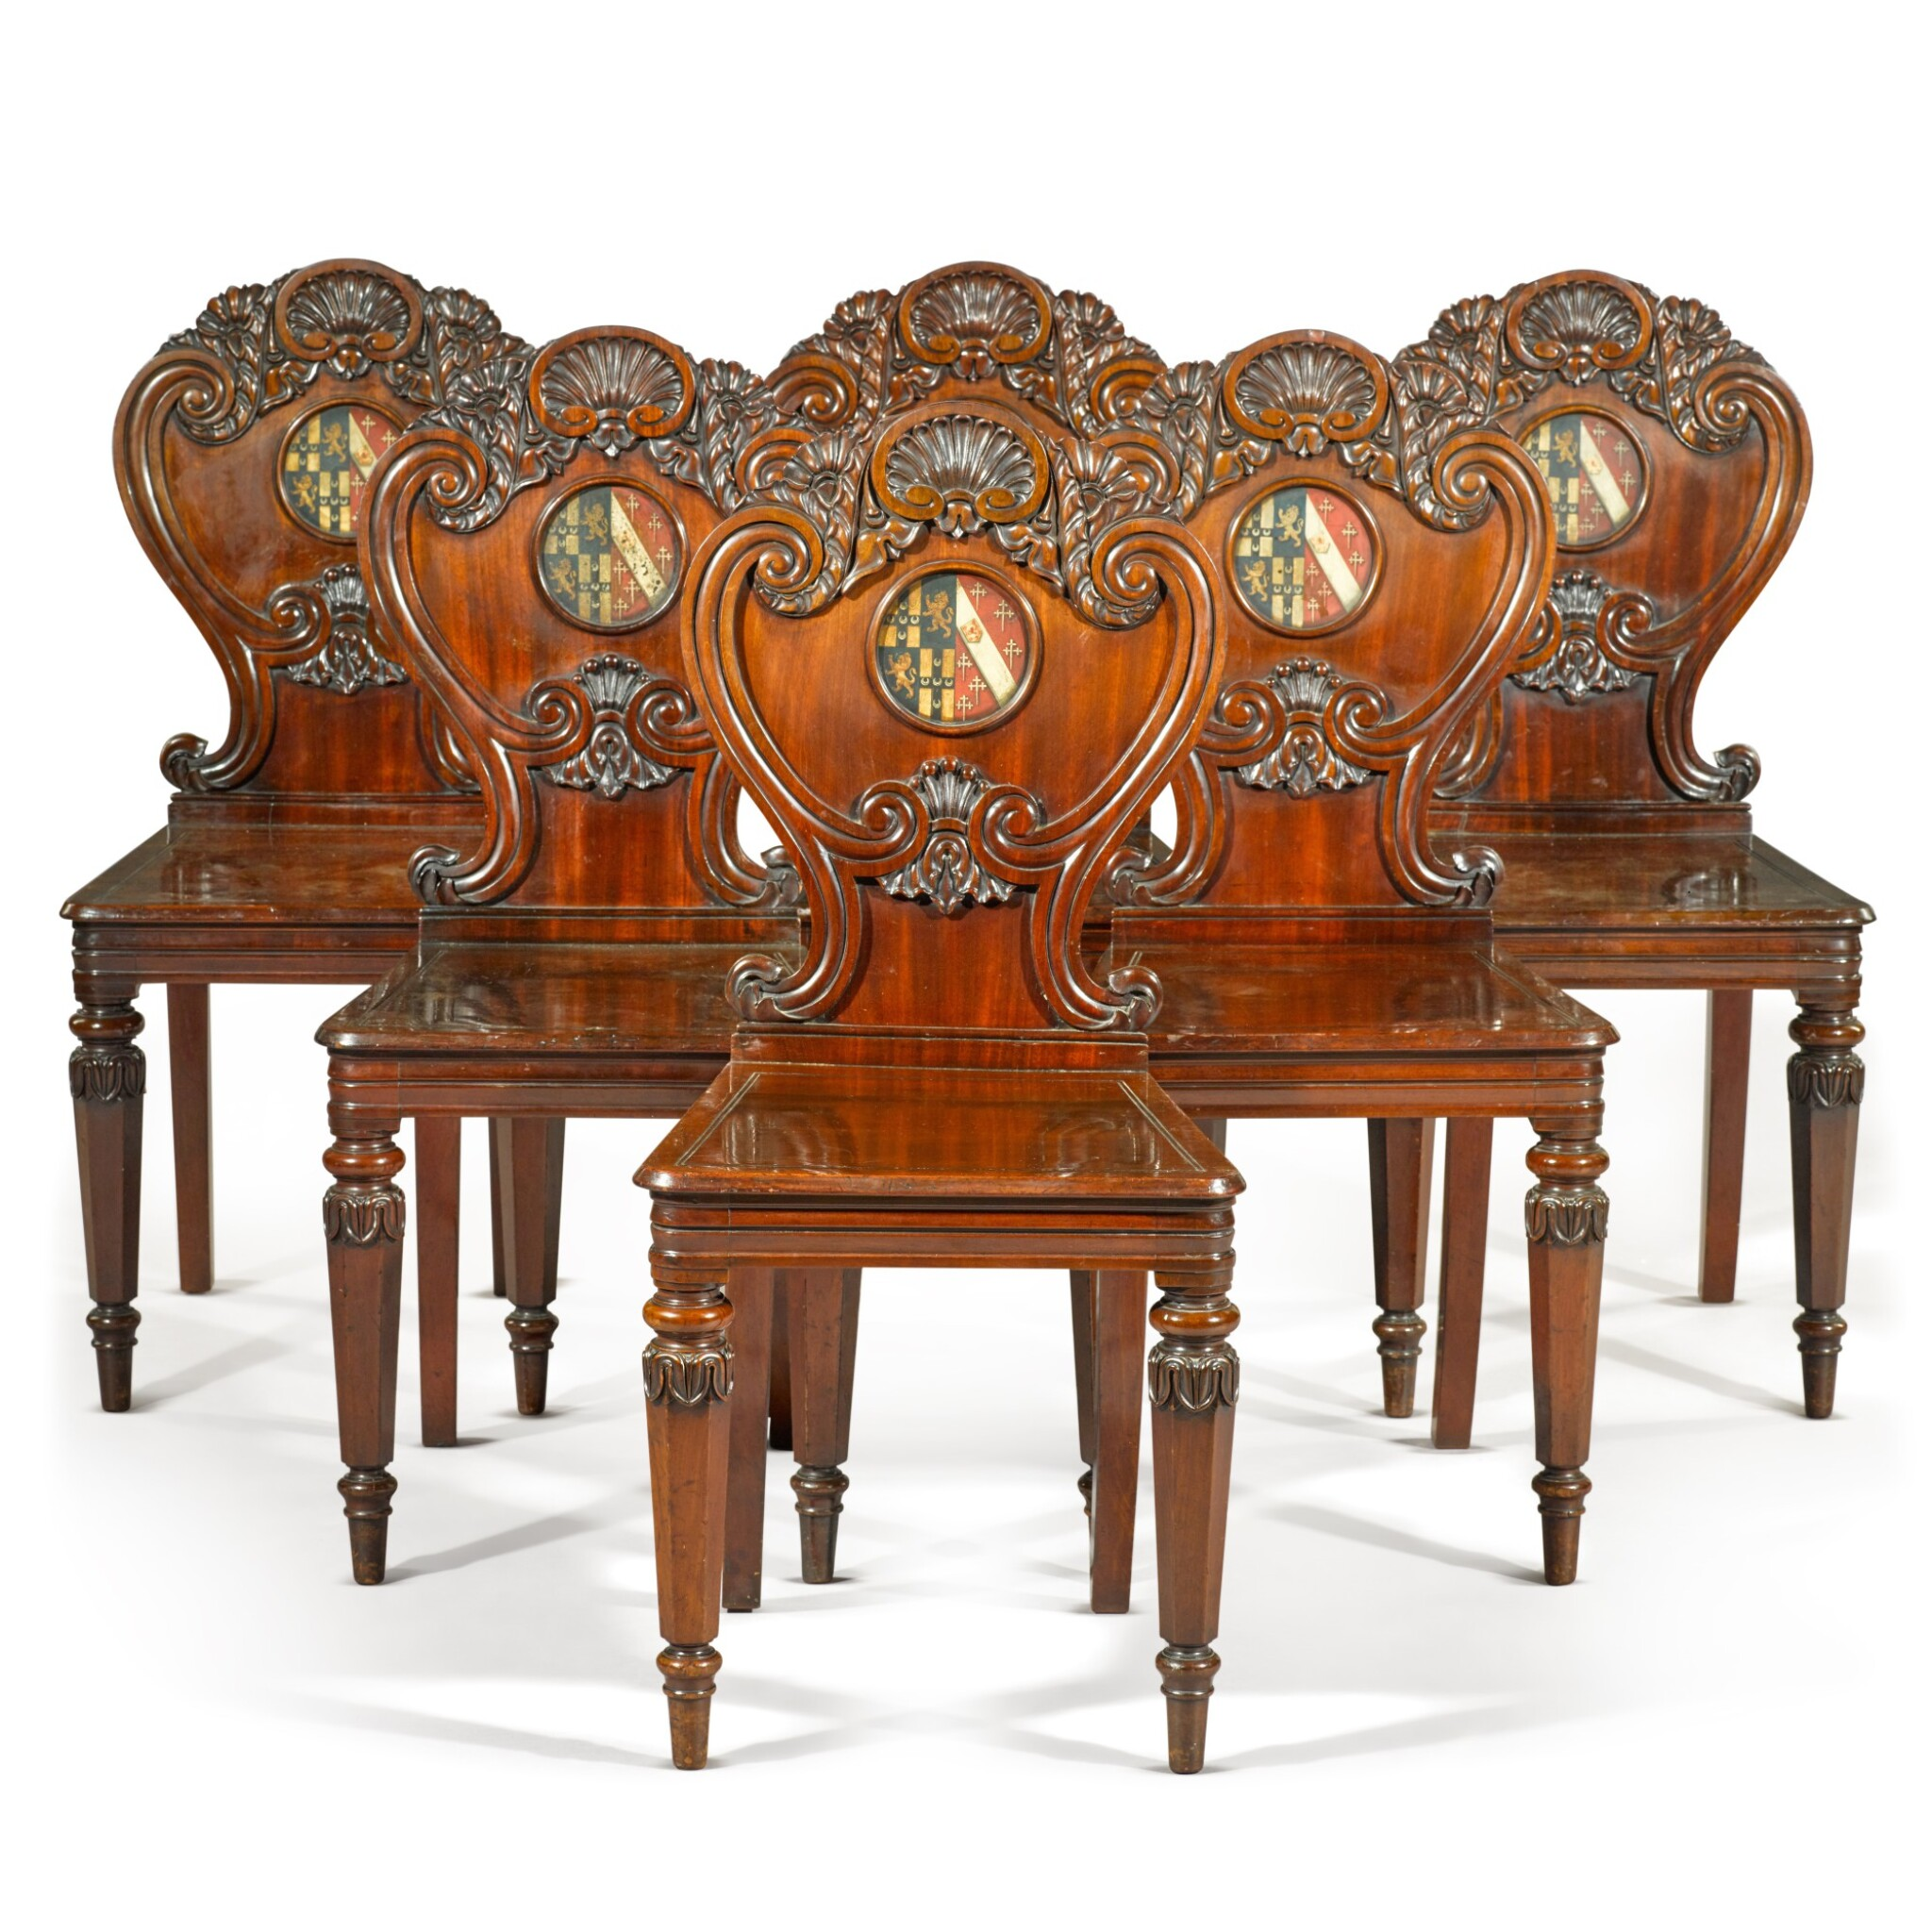 View full screen - View 1 of Lot 71. A set of six George IV carved mahogany hall chairs, circa 1822, in the manner of Gillows.